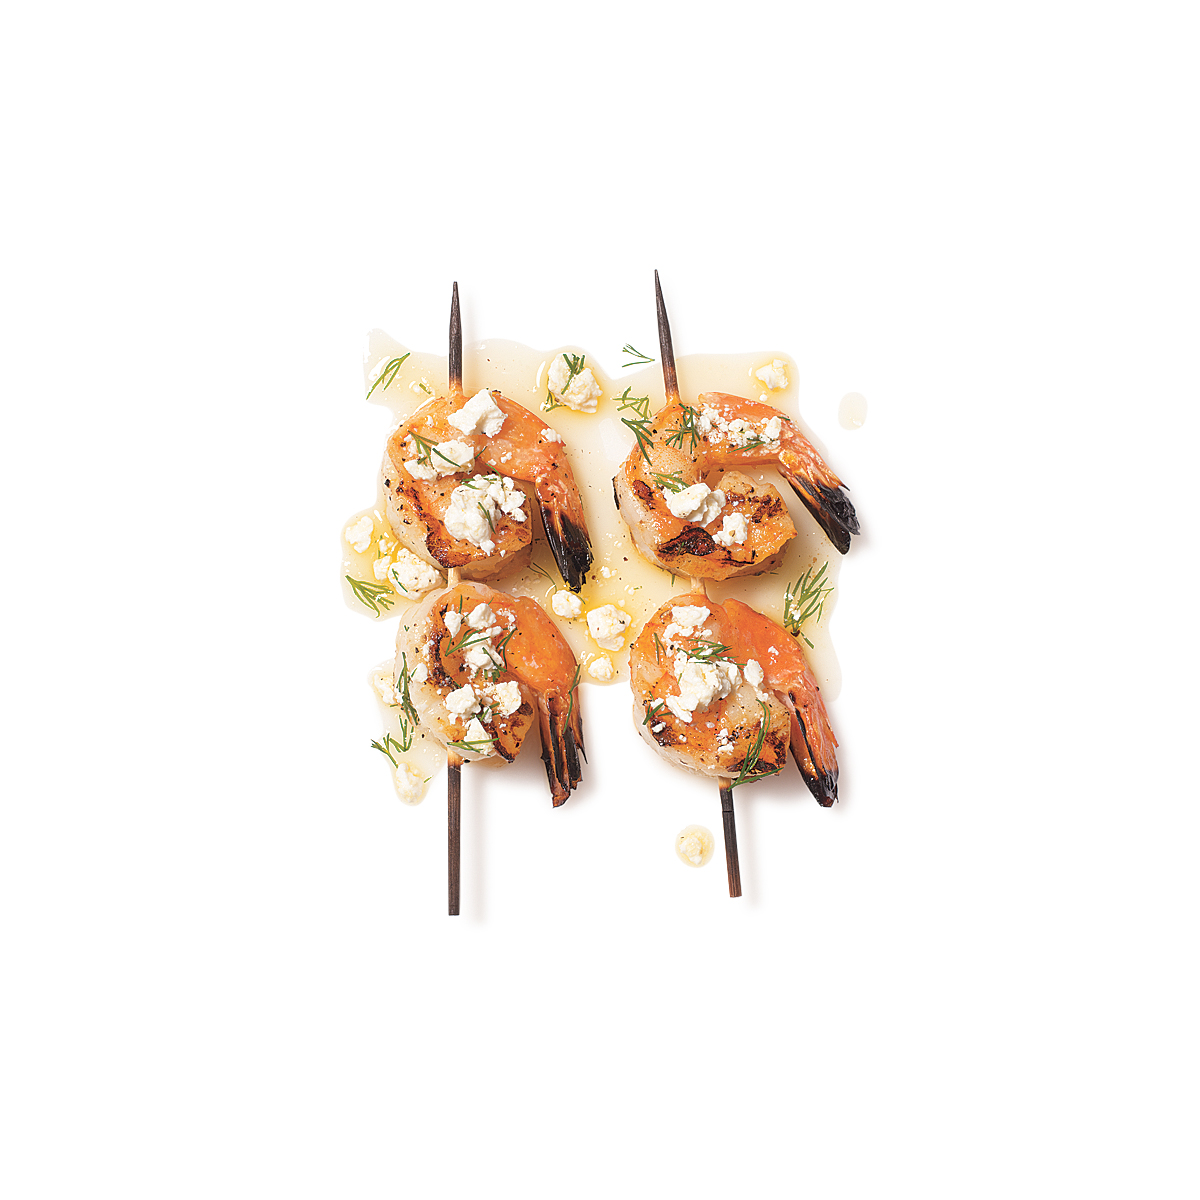 Shrimp Skewers with Dill and Feta